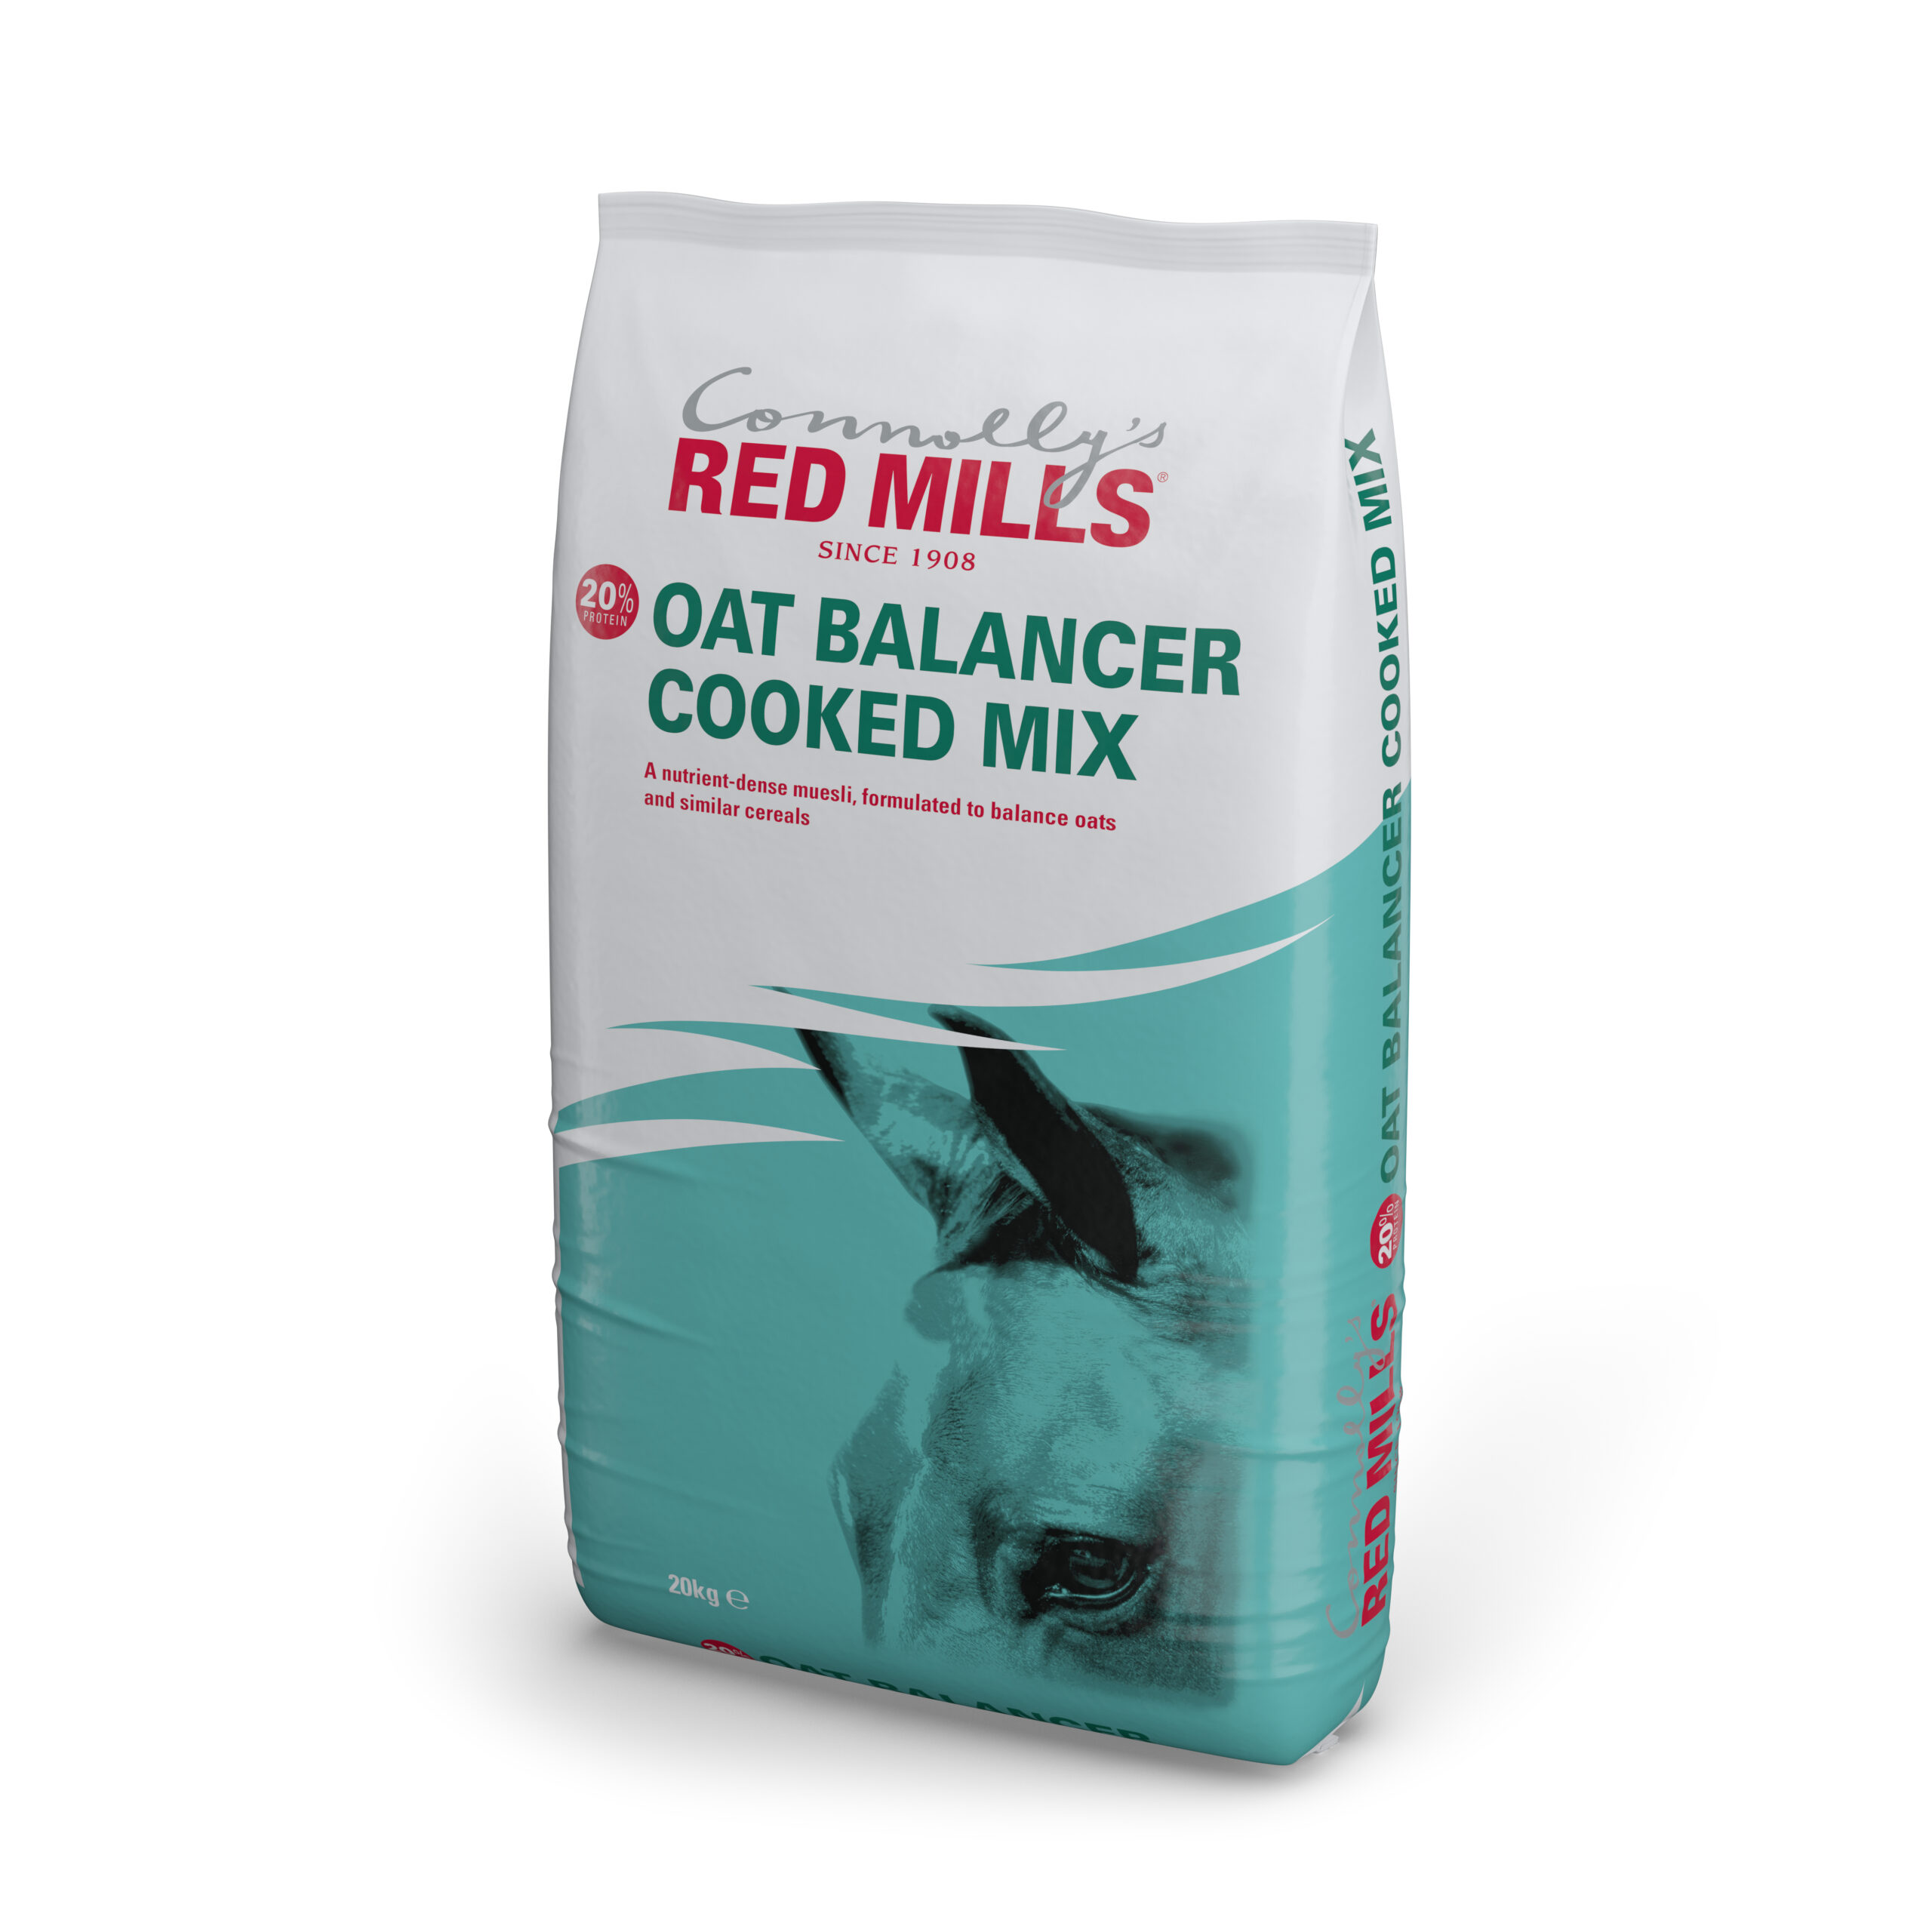 RED MILLS 20% Oat Balancer Cooked Mix